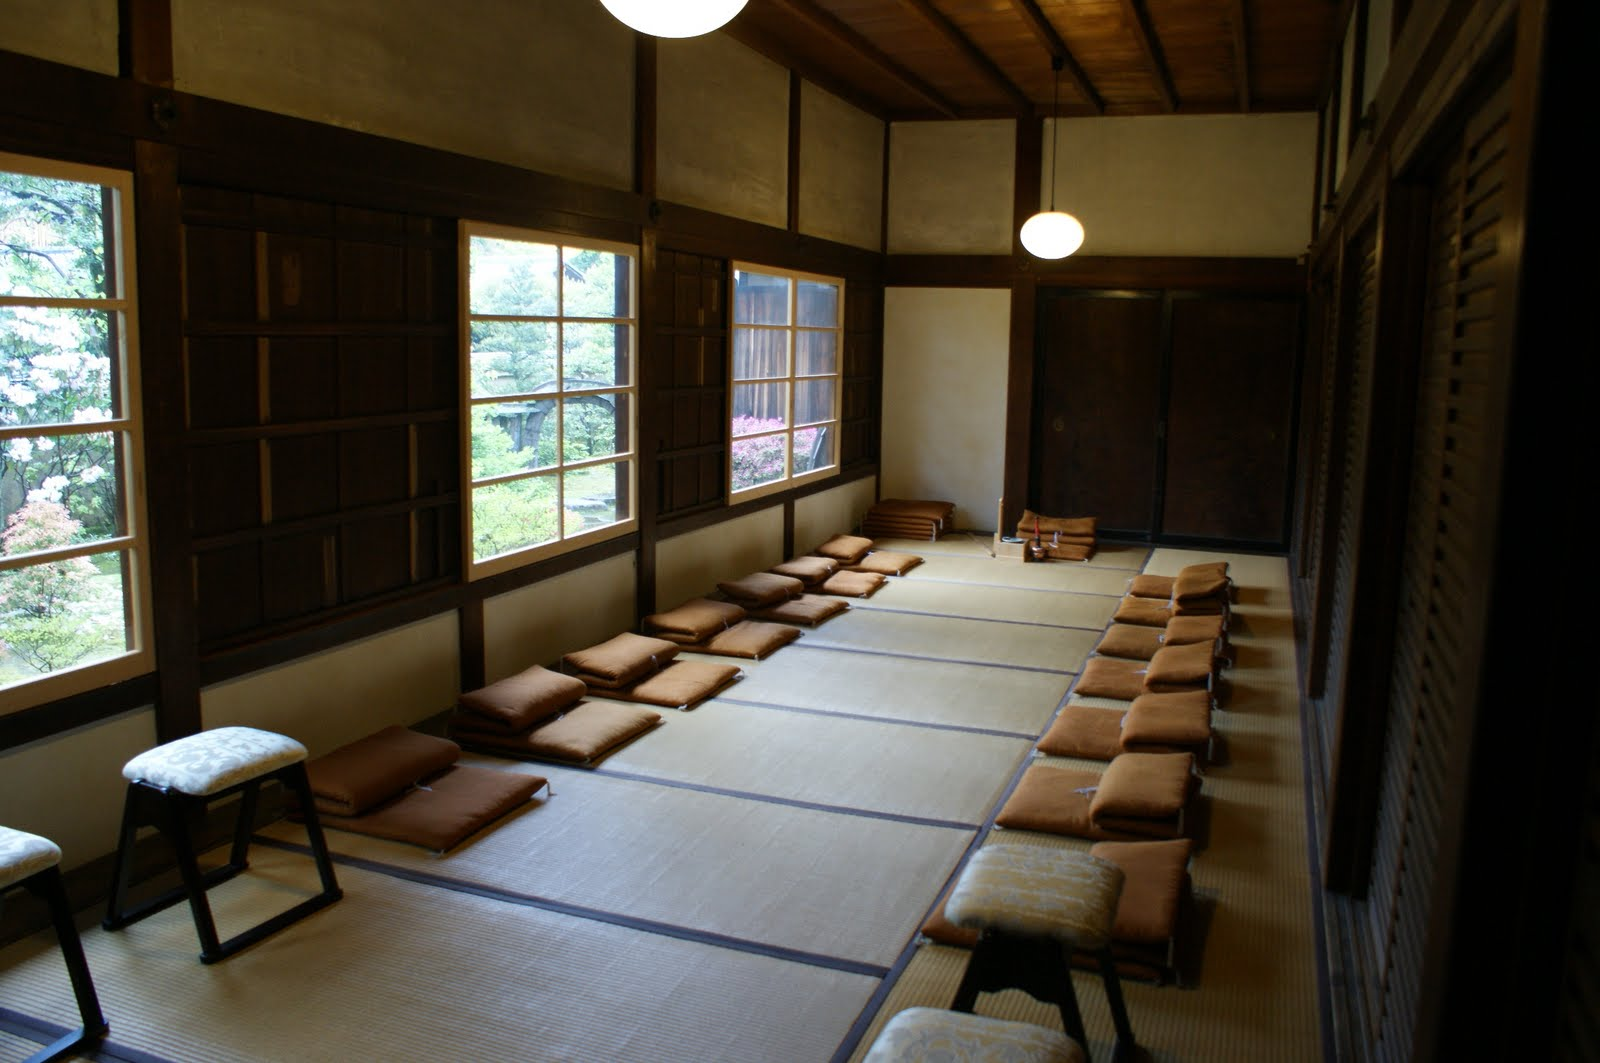 Zen meditation room japanese meditation seating set for Zen meditation room